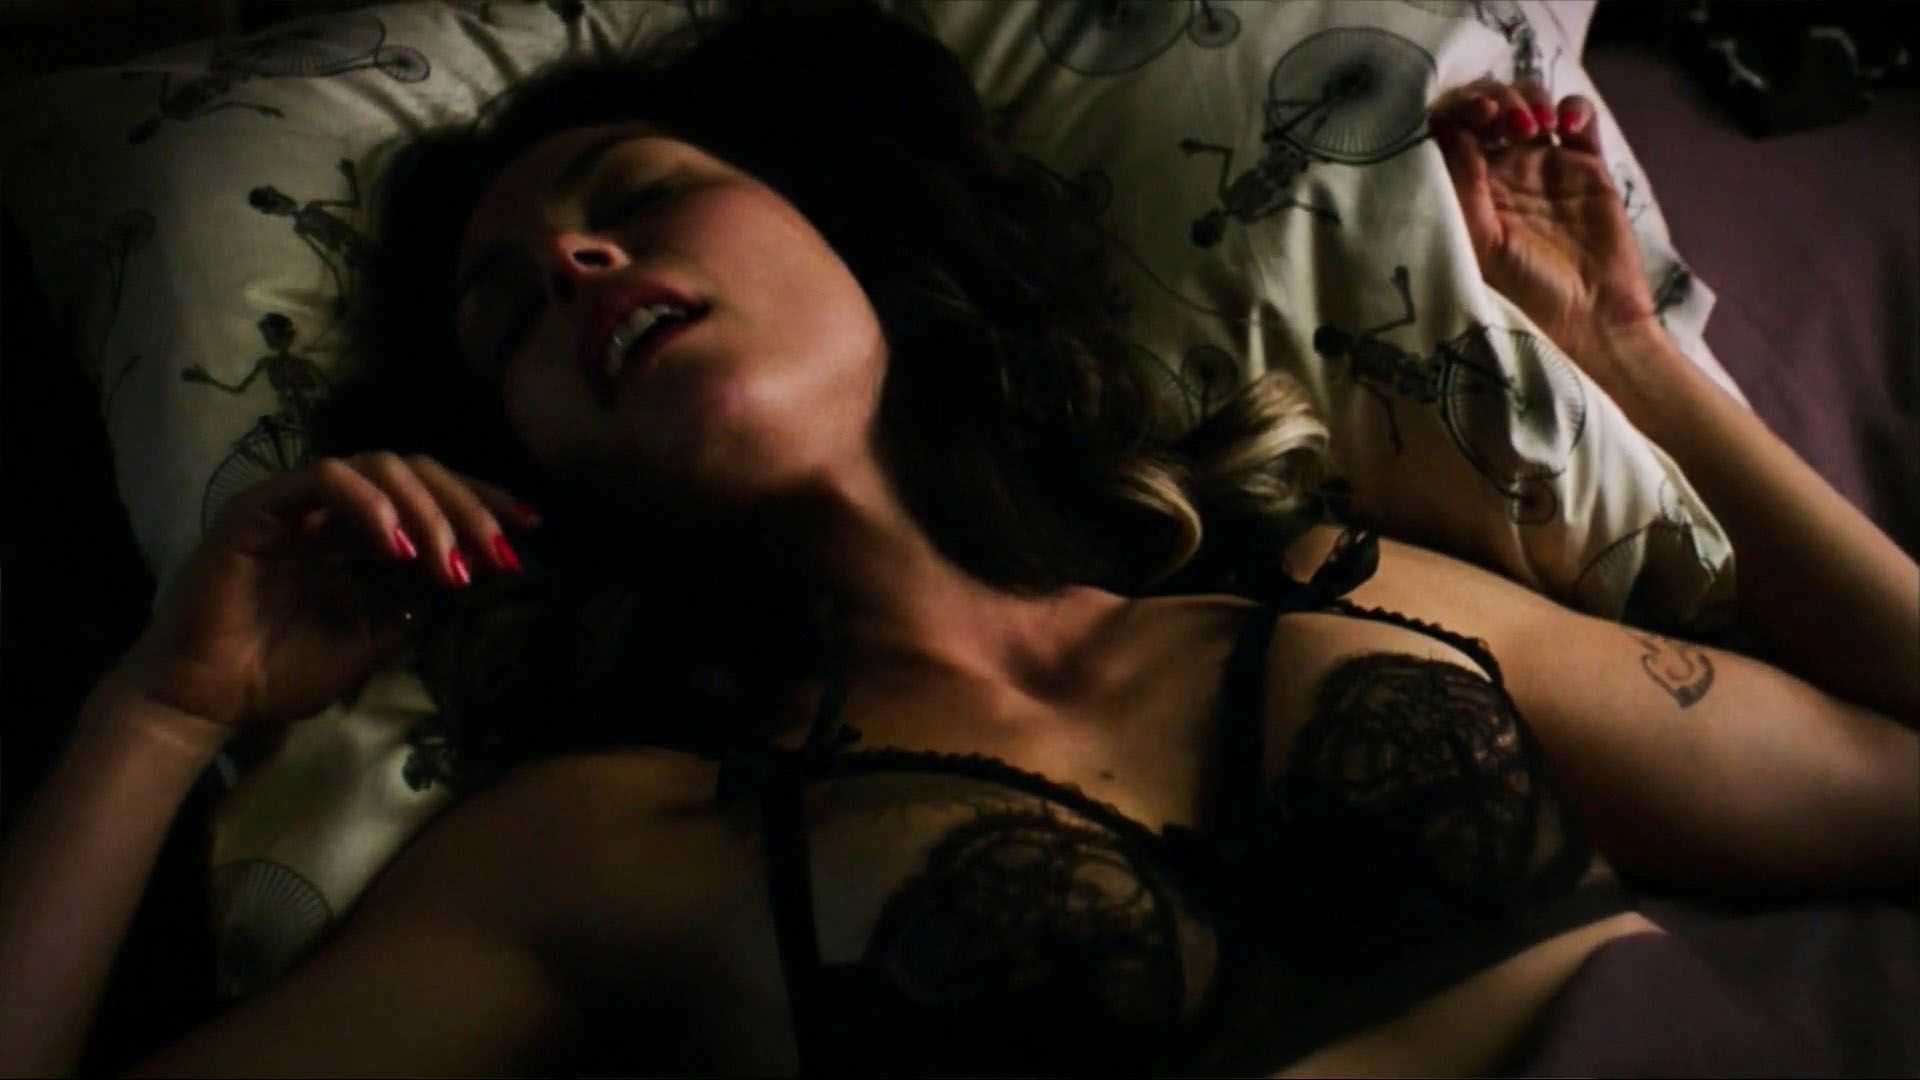 Morena Baccarin nude boobs